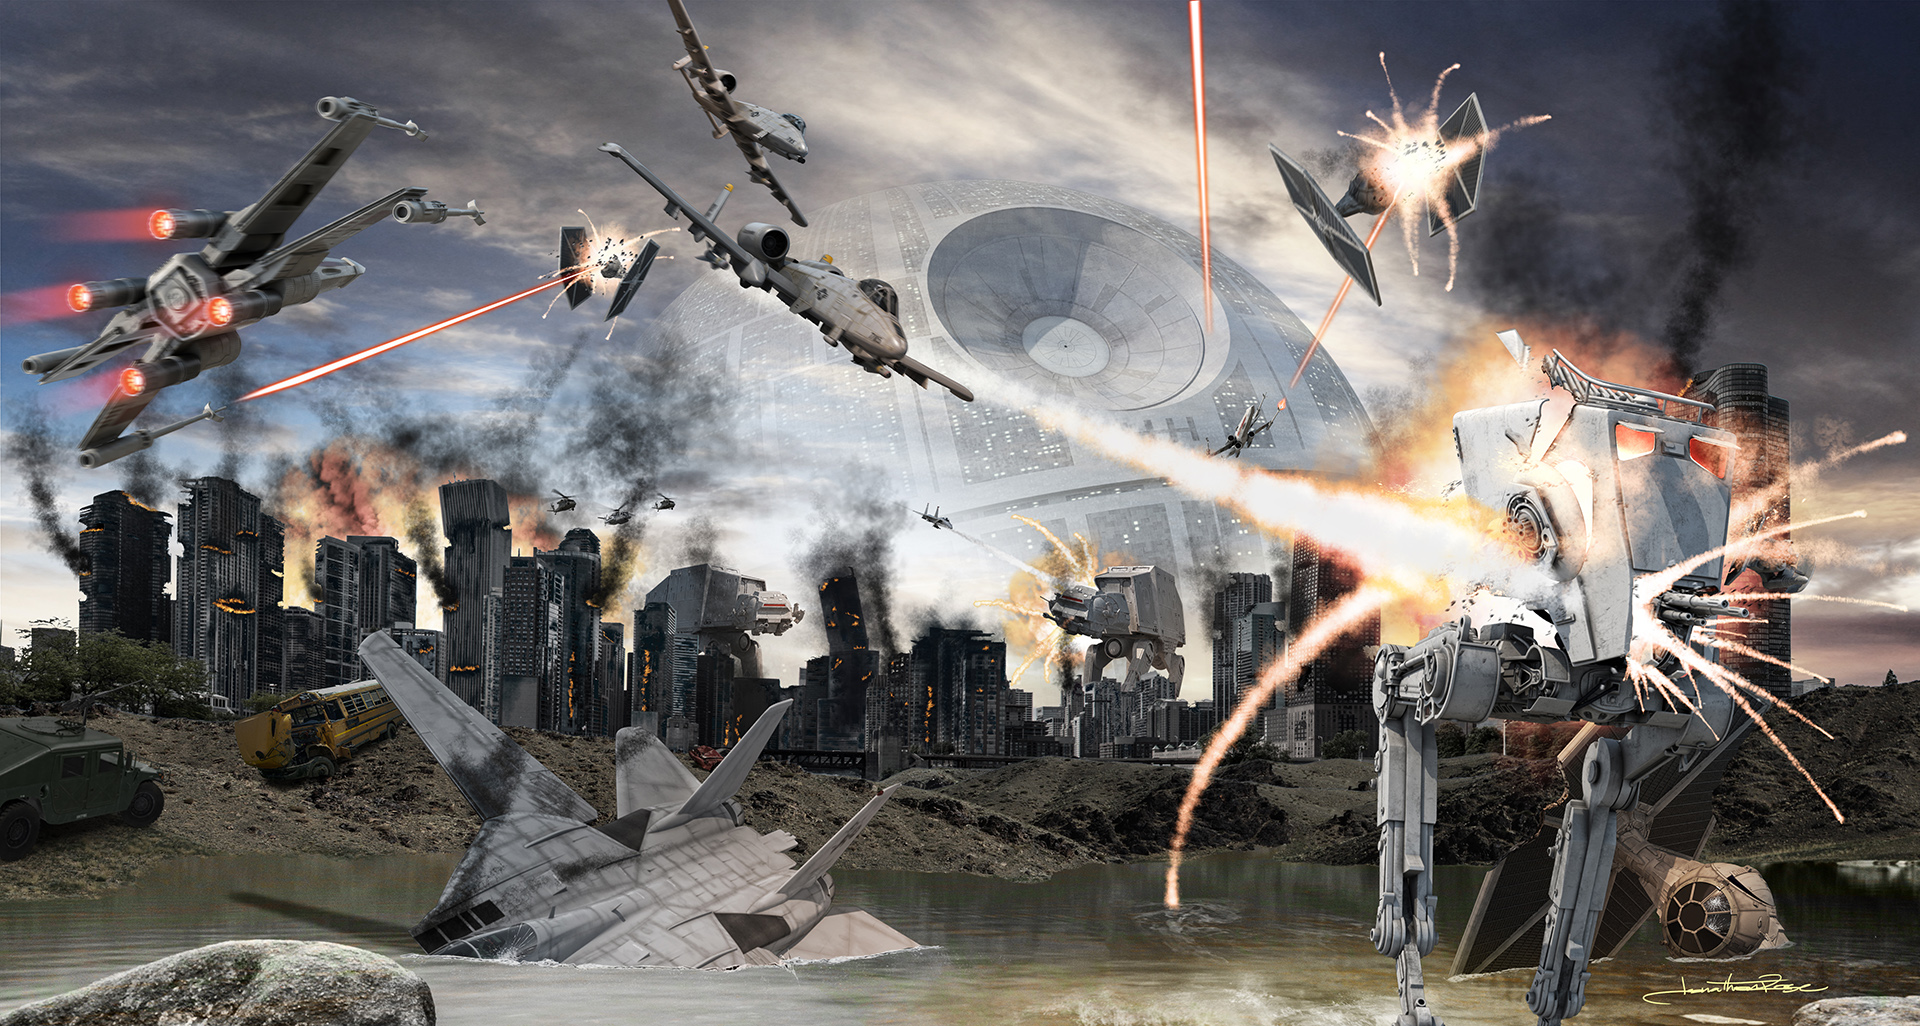 EMPIRE OVER cHICAGO - 2017Photoshop CCStar Wars: TM & © Lucasfilm Ltd. All Rights Reserved